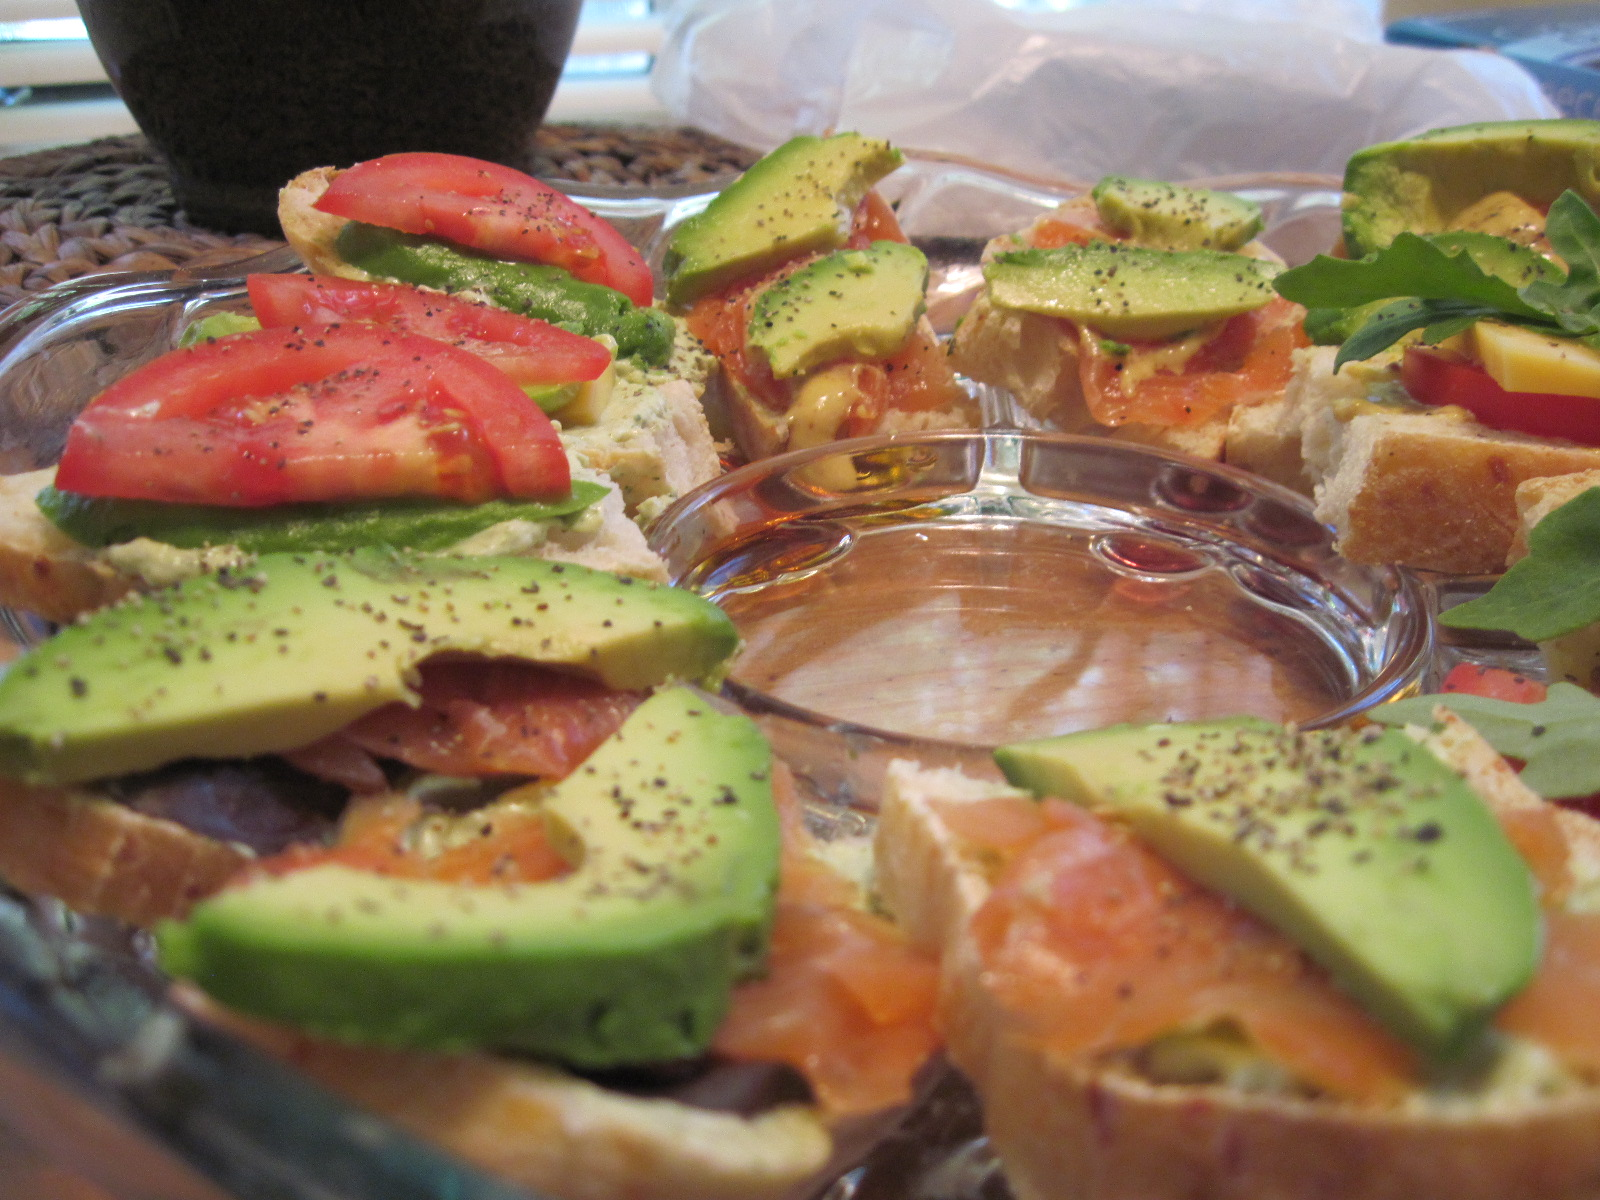 This Delicious Dish: Fresh Open Faced Sandwiches